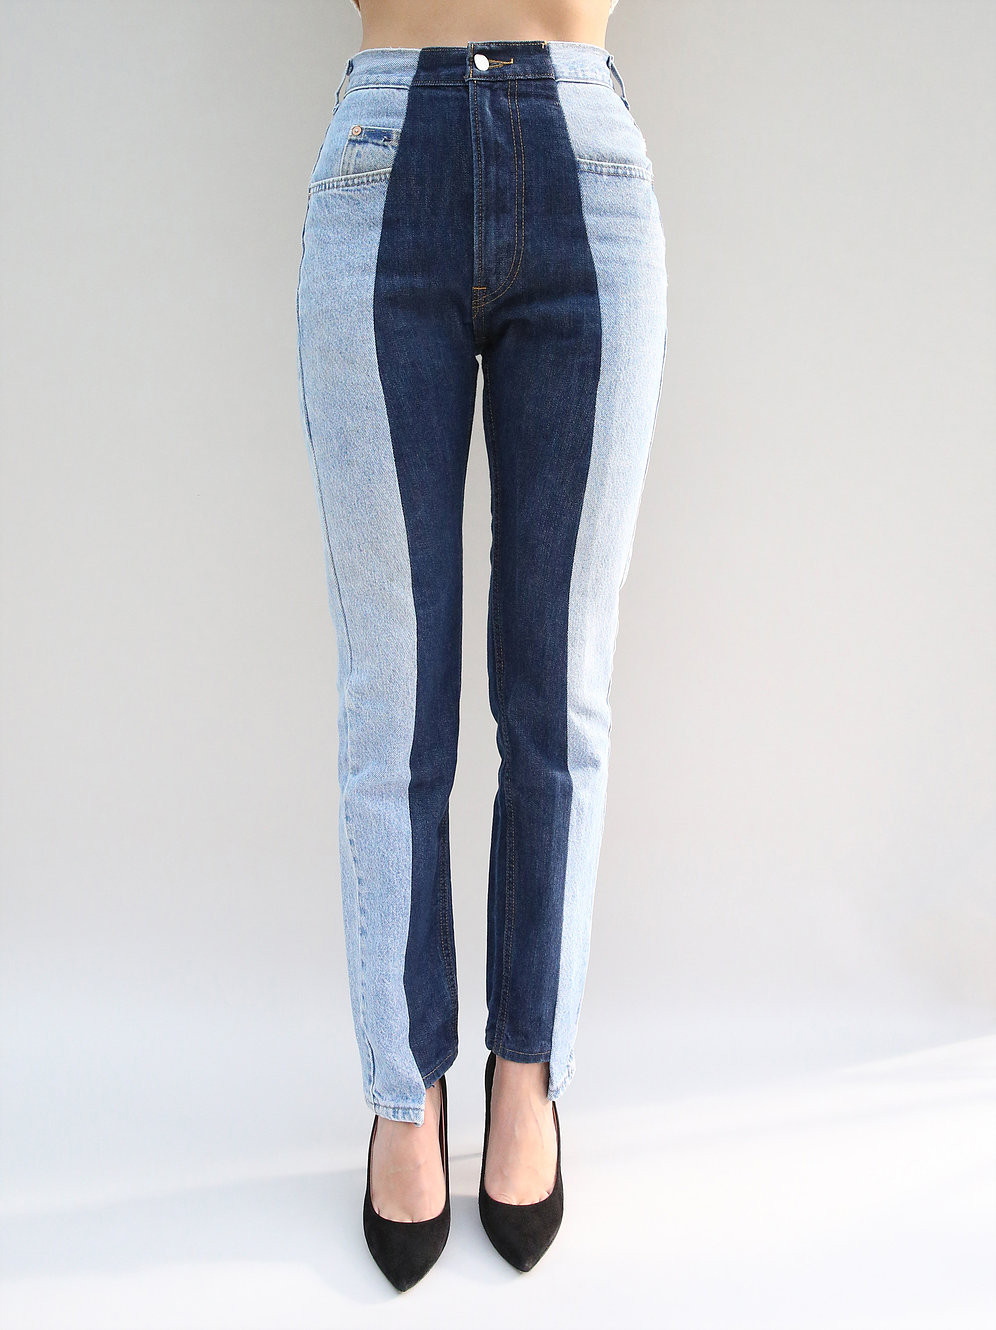 Waist down photo of blue upcycled jeans